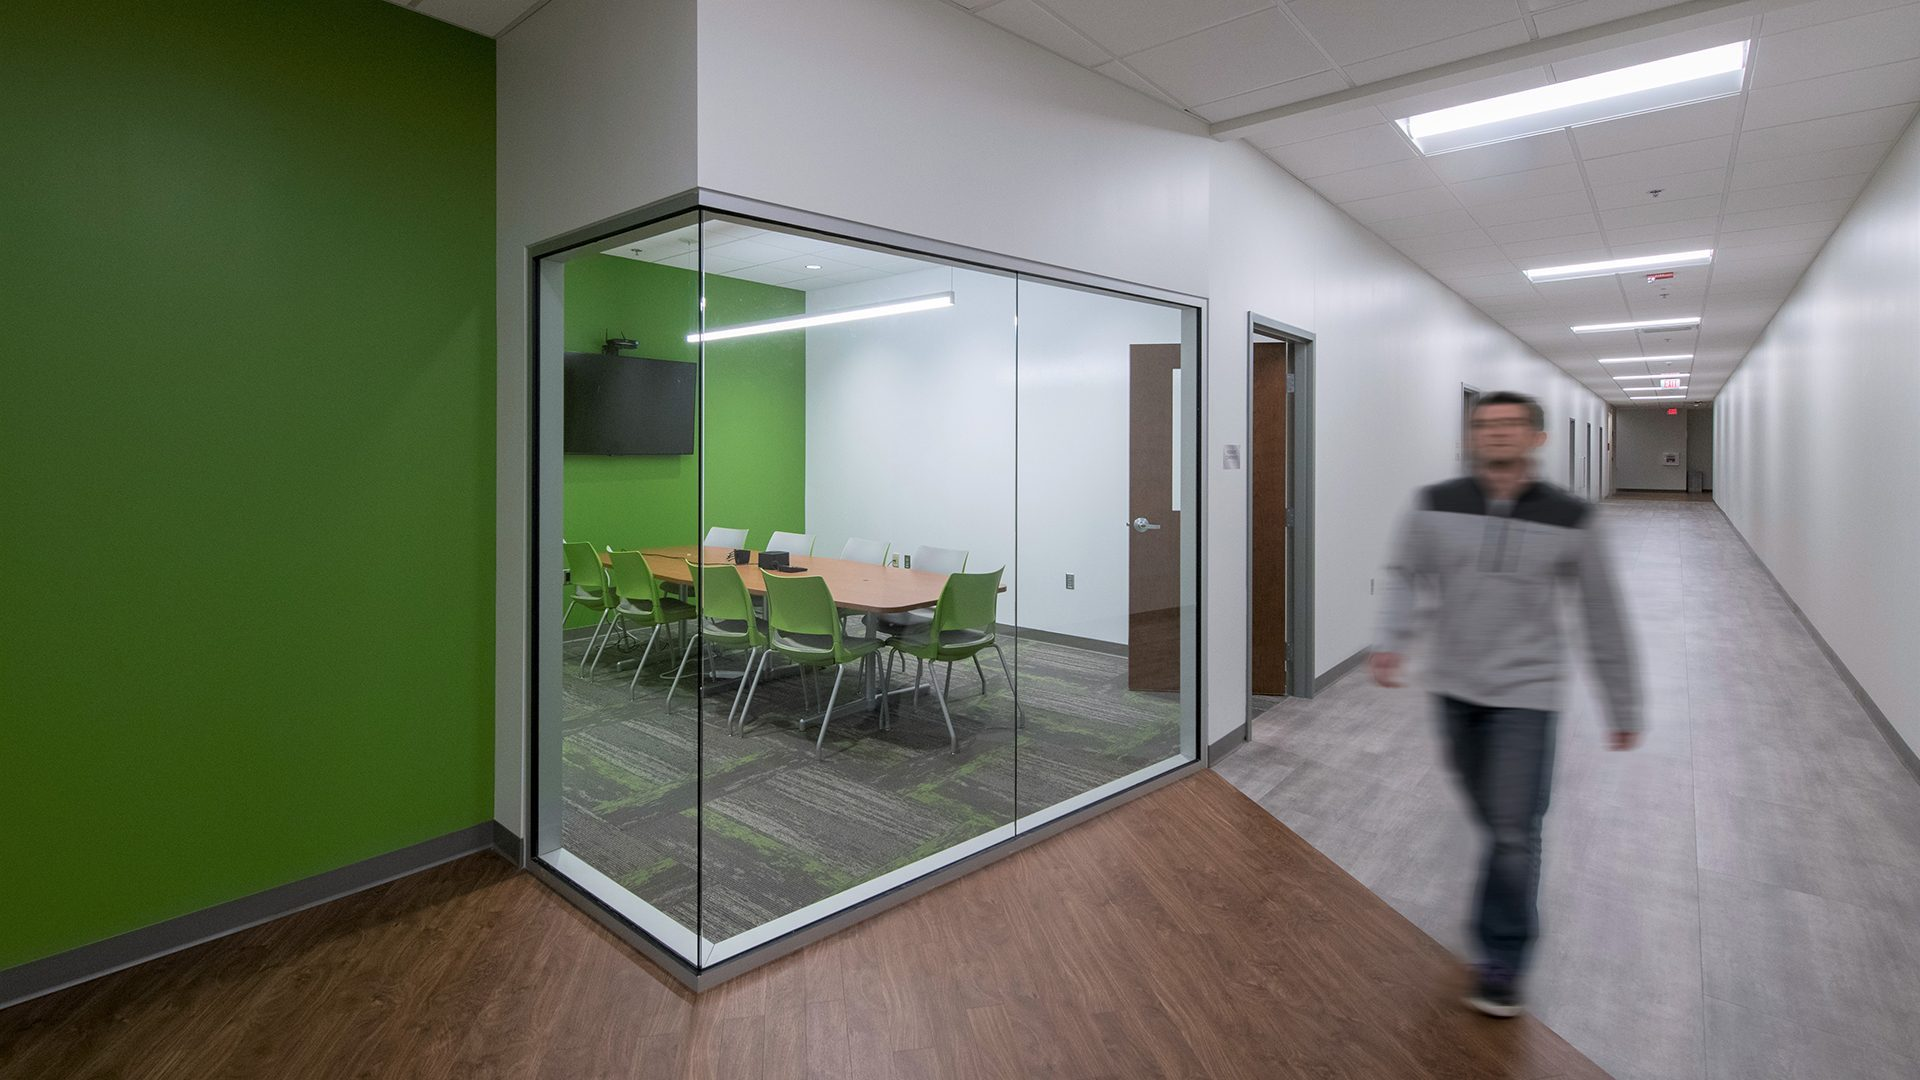 Parkview Education Center Green Hall and Conference Room